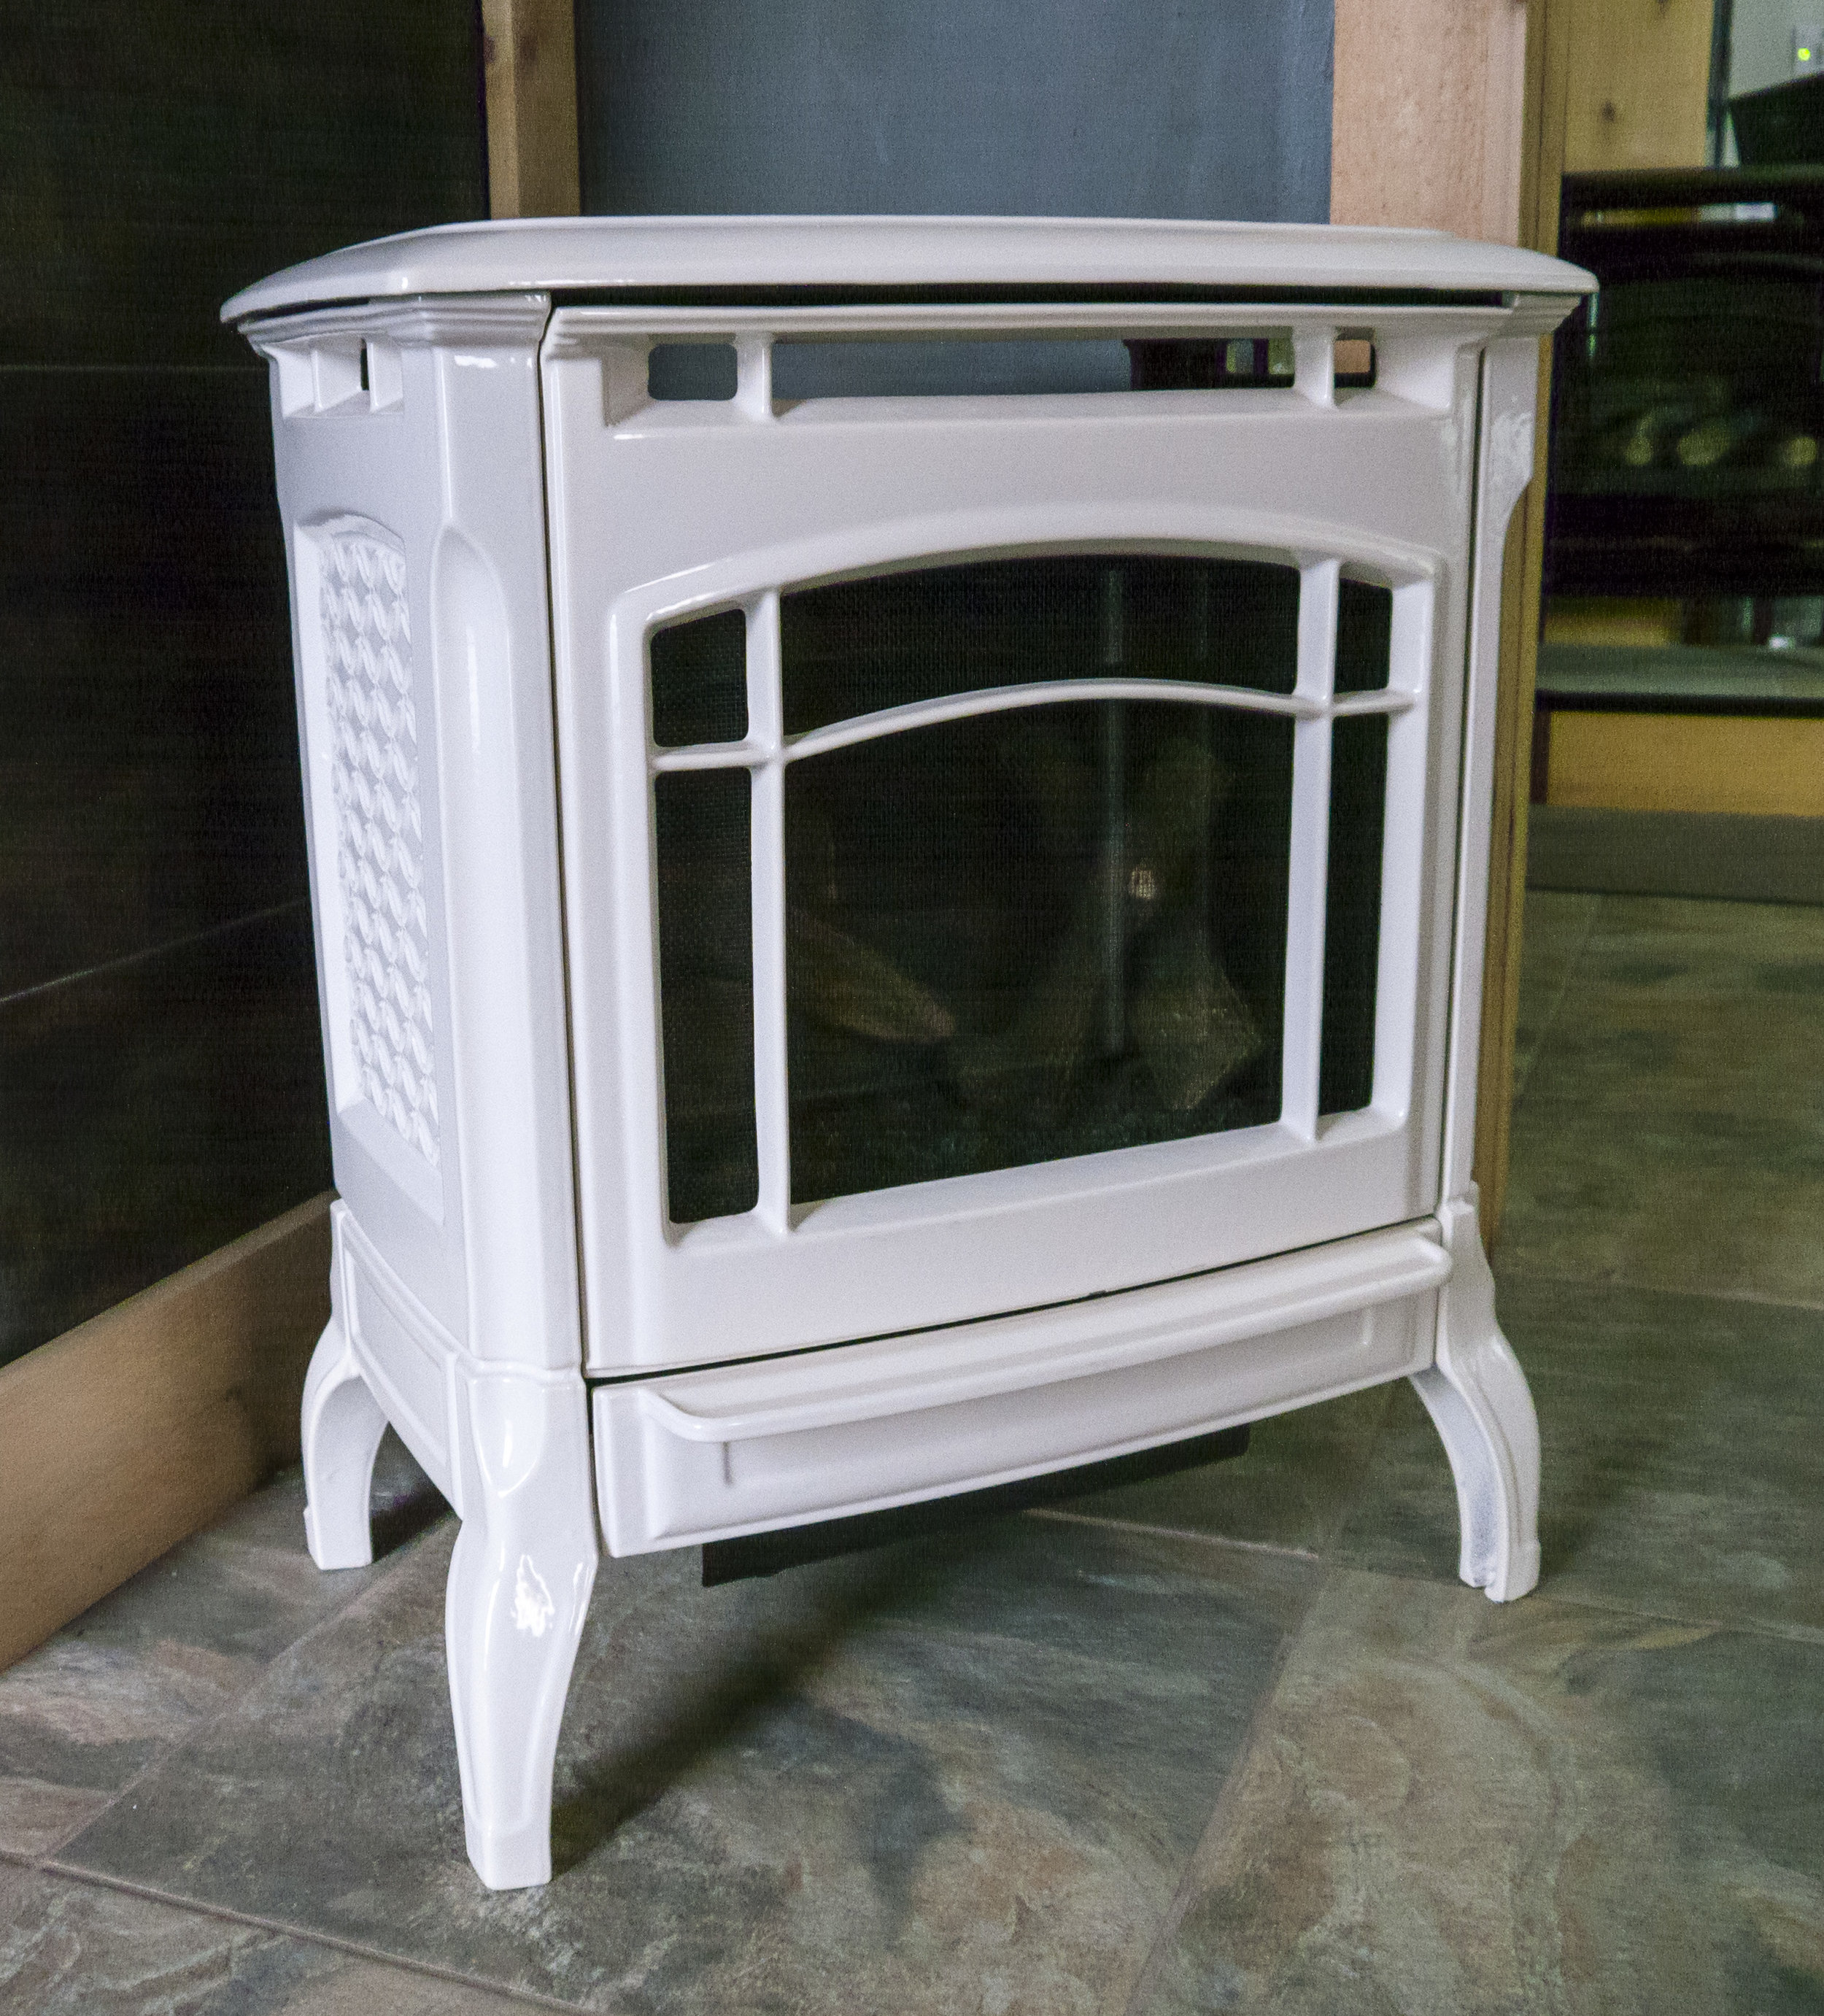 Hearthstone Stowe - ‧ Direct Vent Gas Stove - 22,400 BTU‧ Oyster Enamel‧ Cast Iron Body‧ Ceramic Logs And Burner‧ Maxitrol Remote Control‧ Fan – Not Included as shown; optional‧ Ideal small stove‧ Choice of Colors‧ Choice of Controls